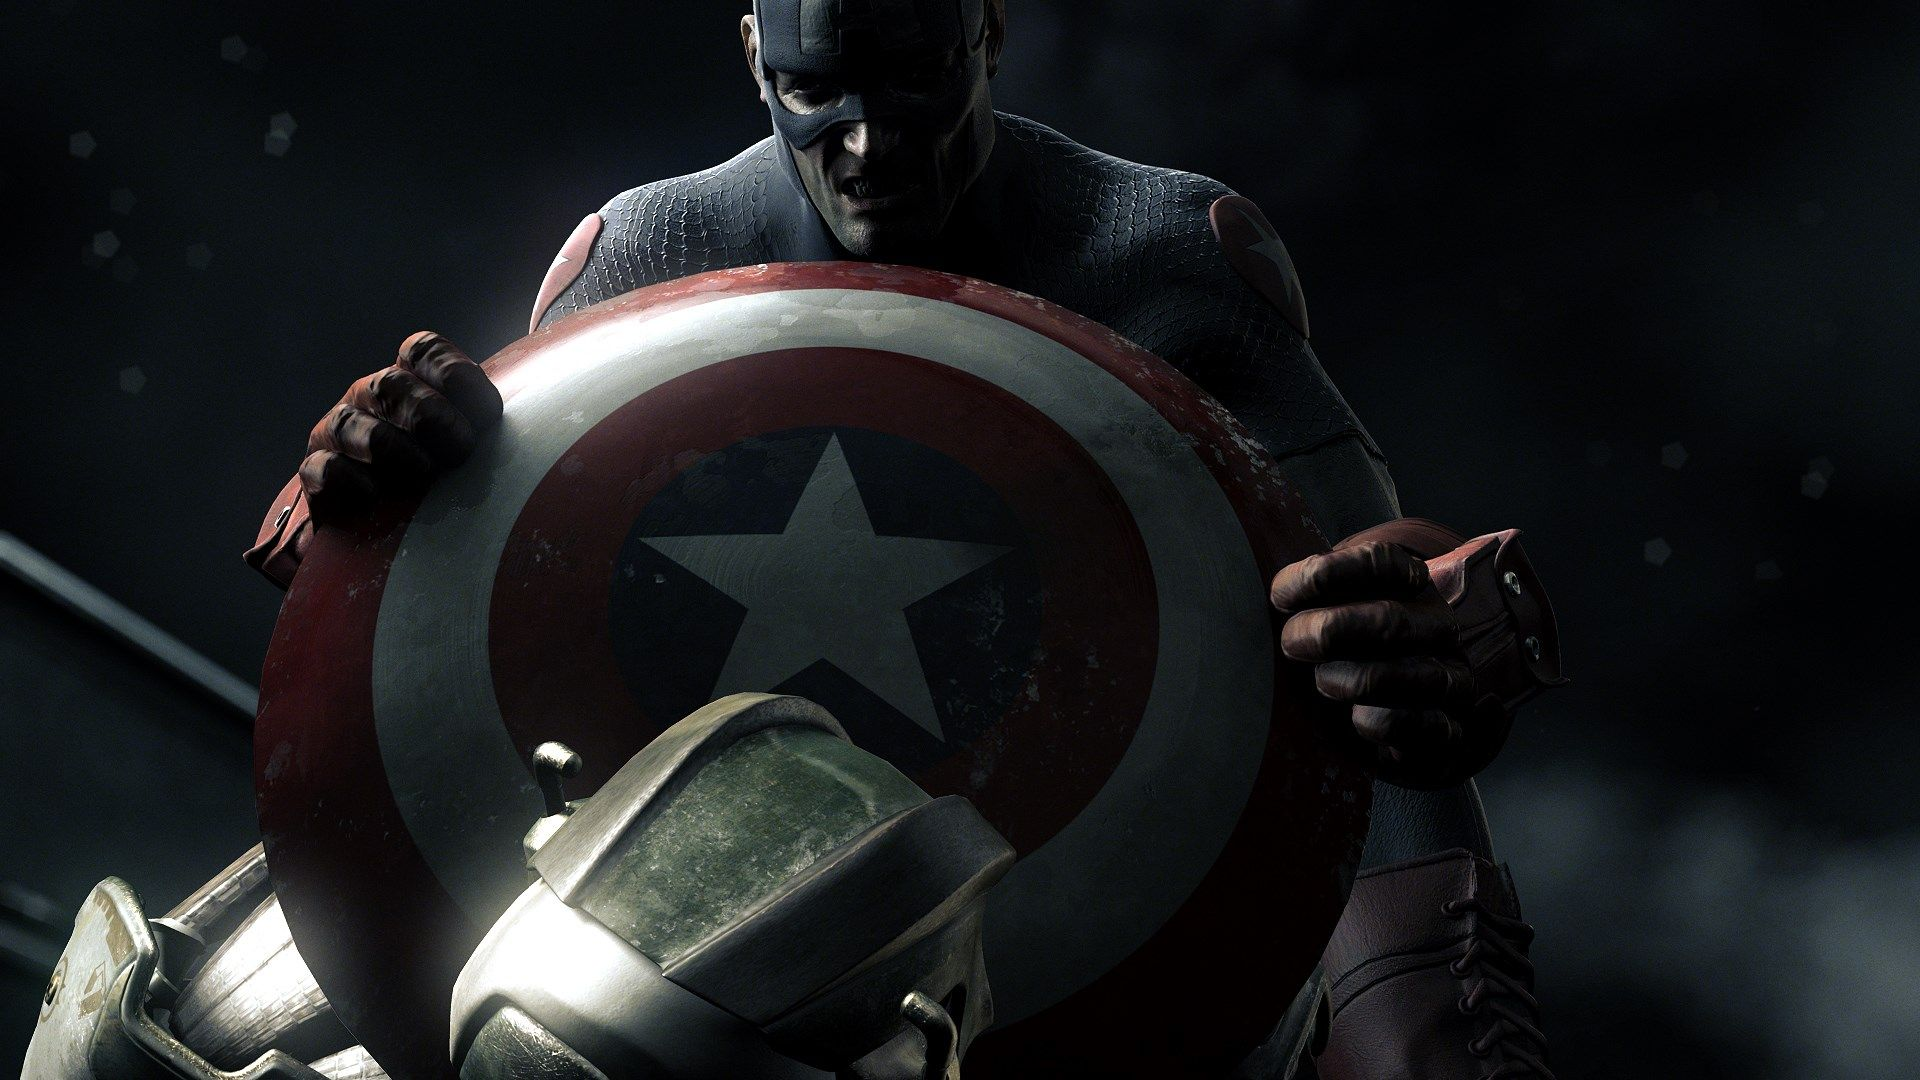 Hd wallpaper of captain america - Captain America Shield Marvel Comics Hd Wallpapers